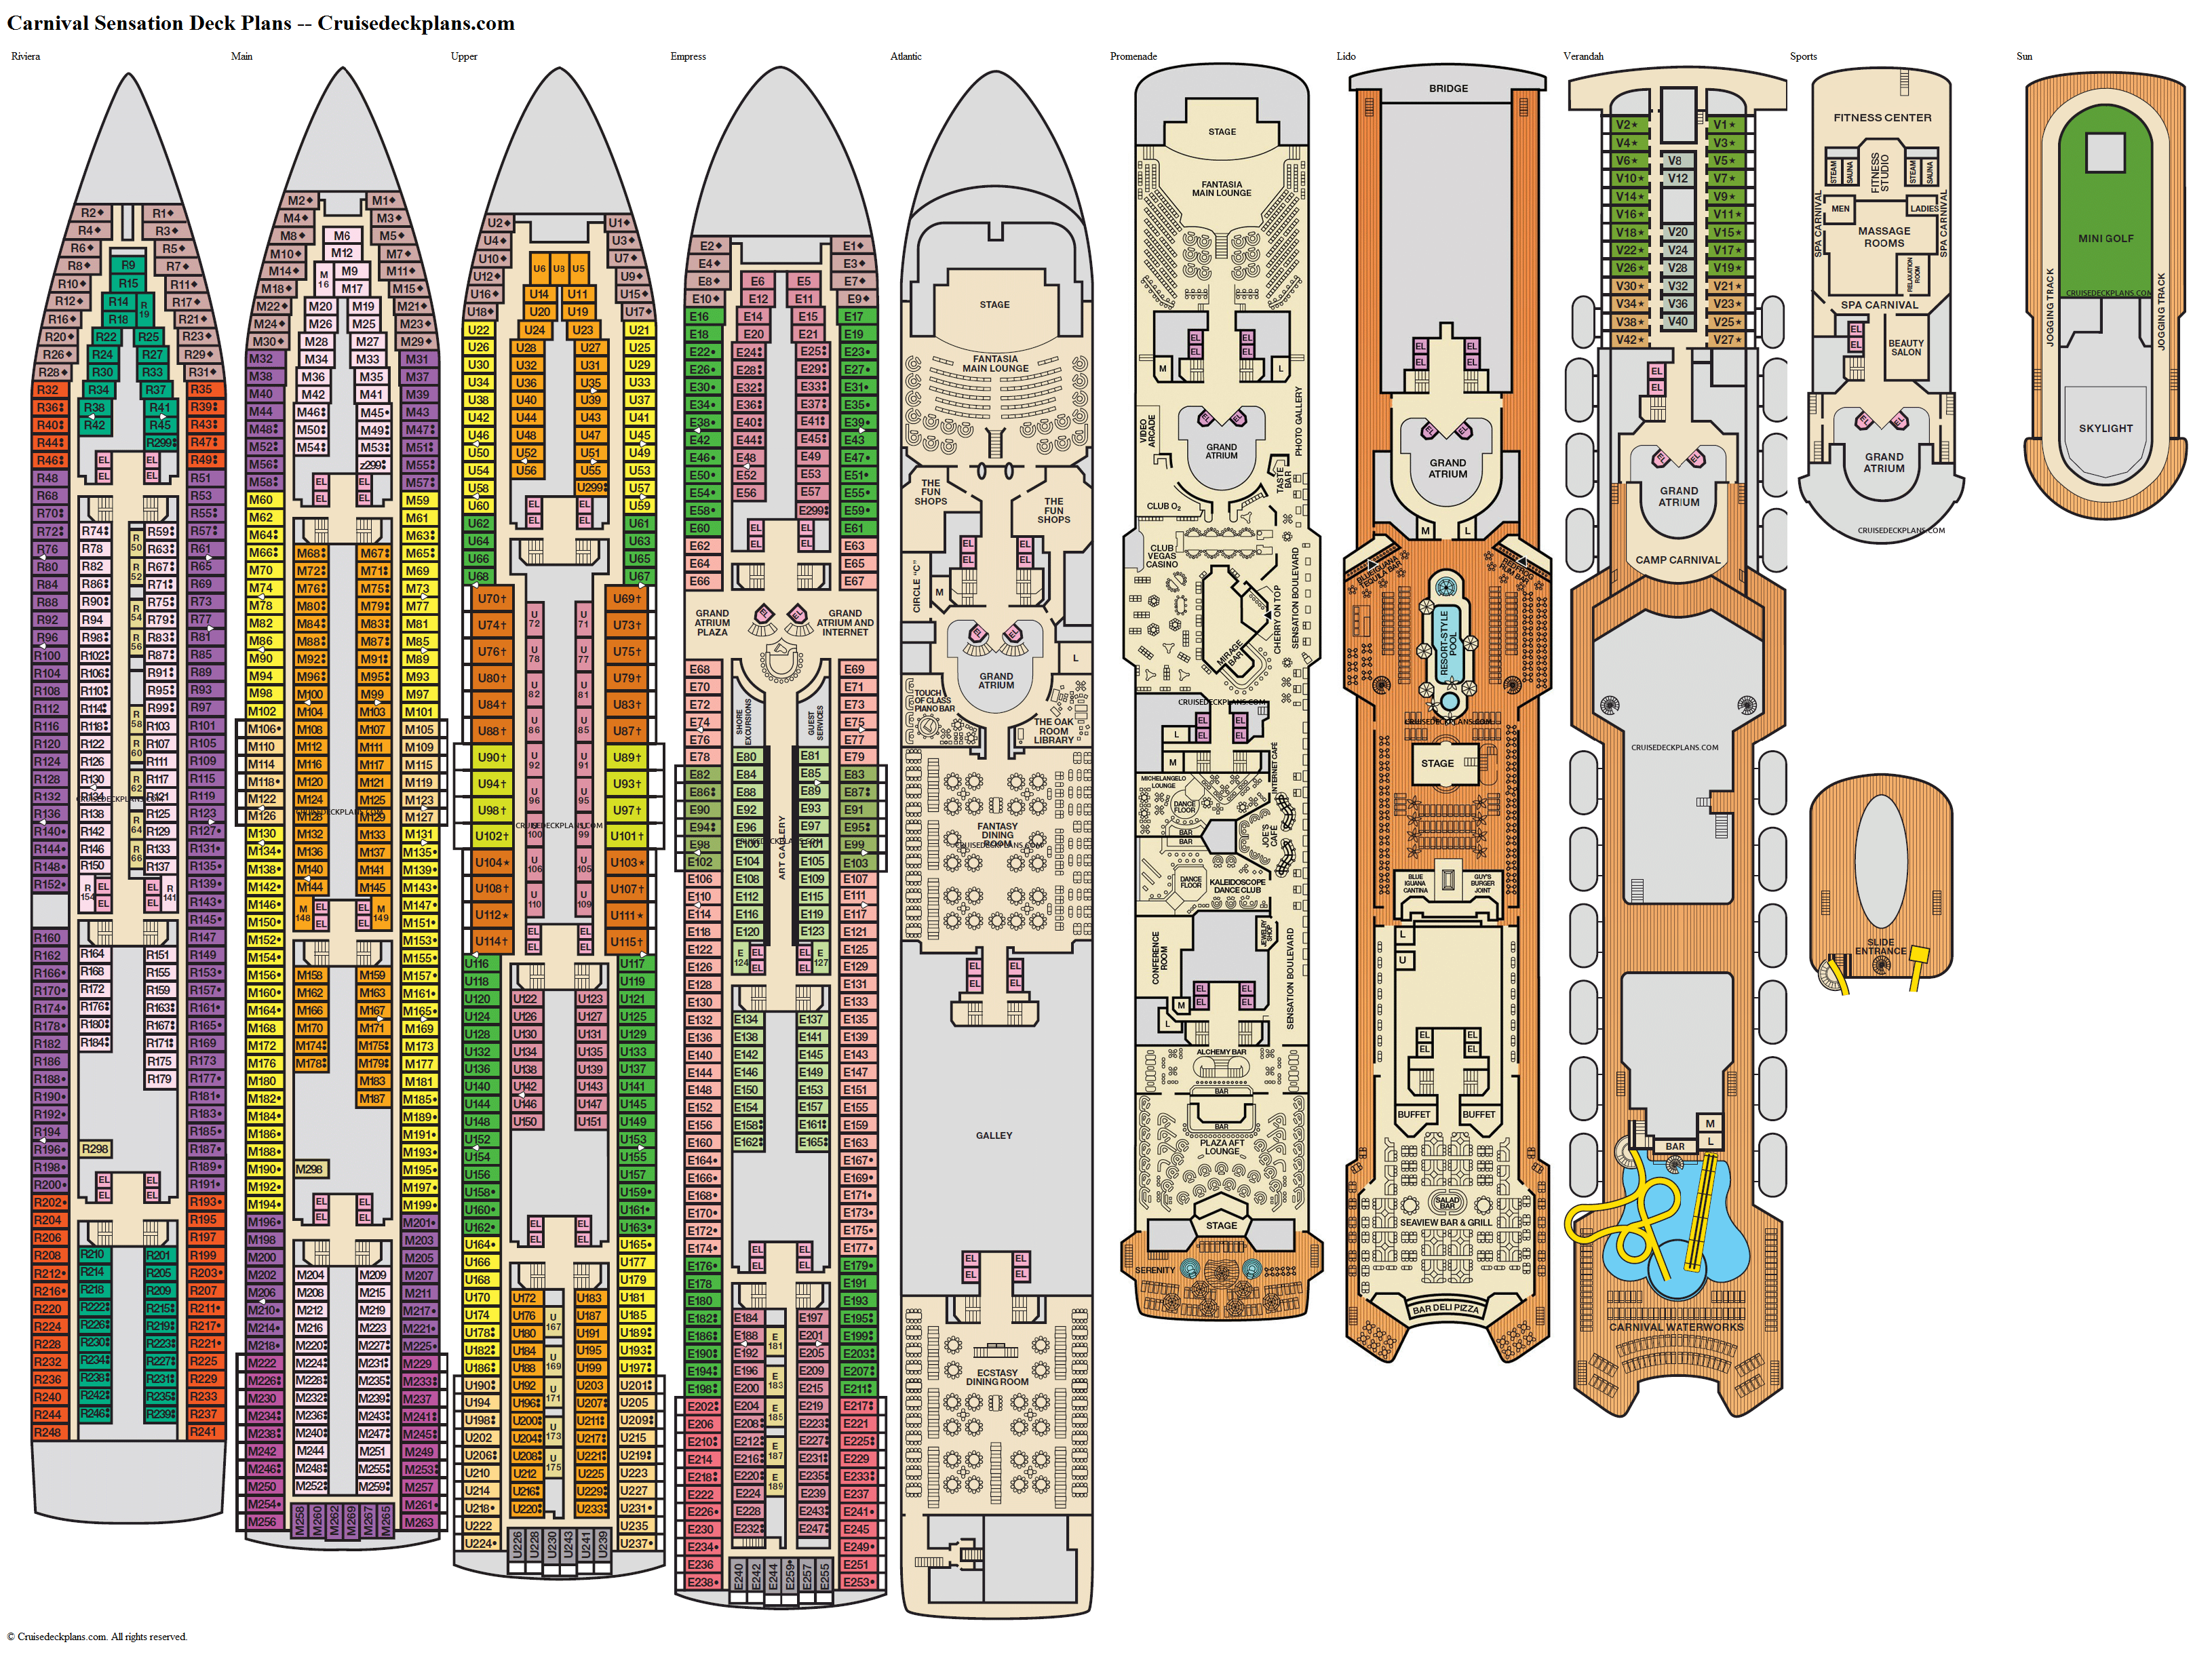 Carnival Sensation deck plans image